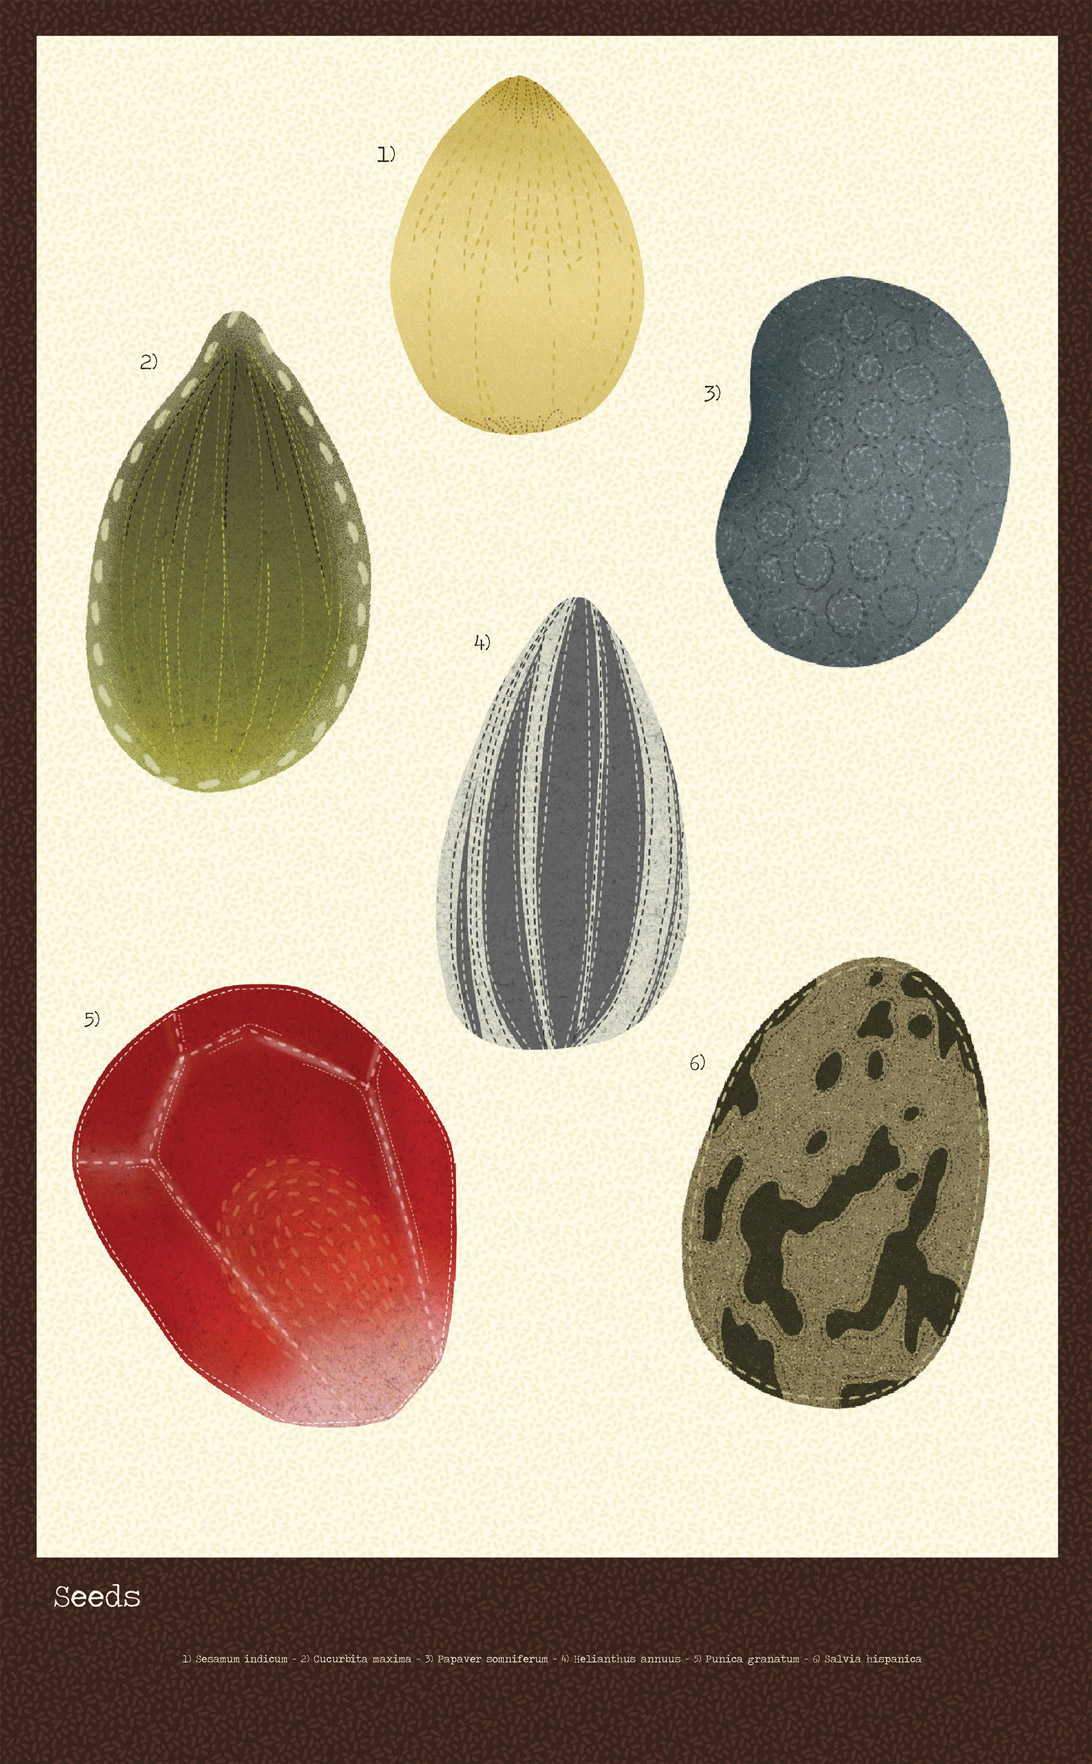 poster of seed illustrations